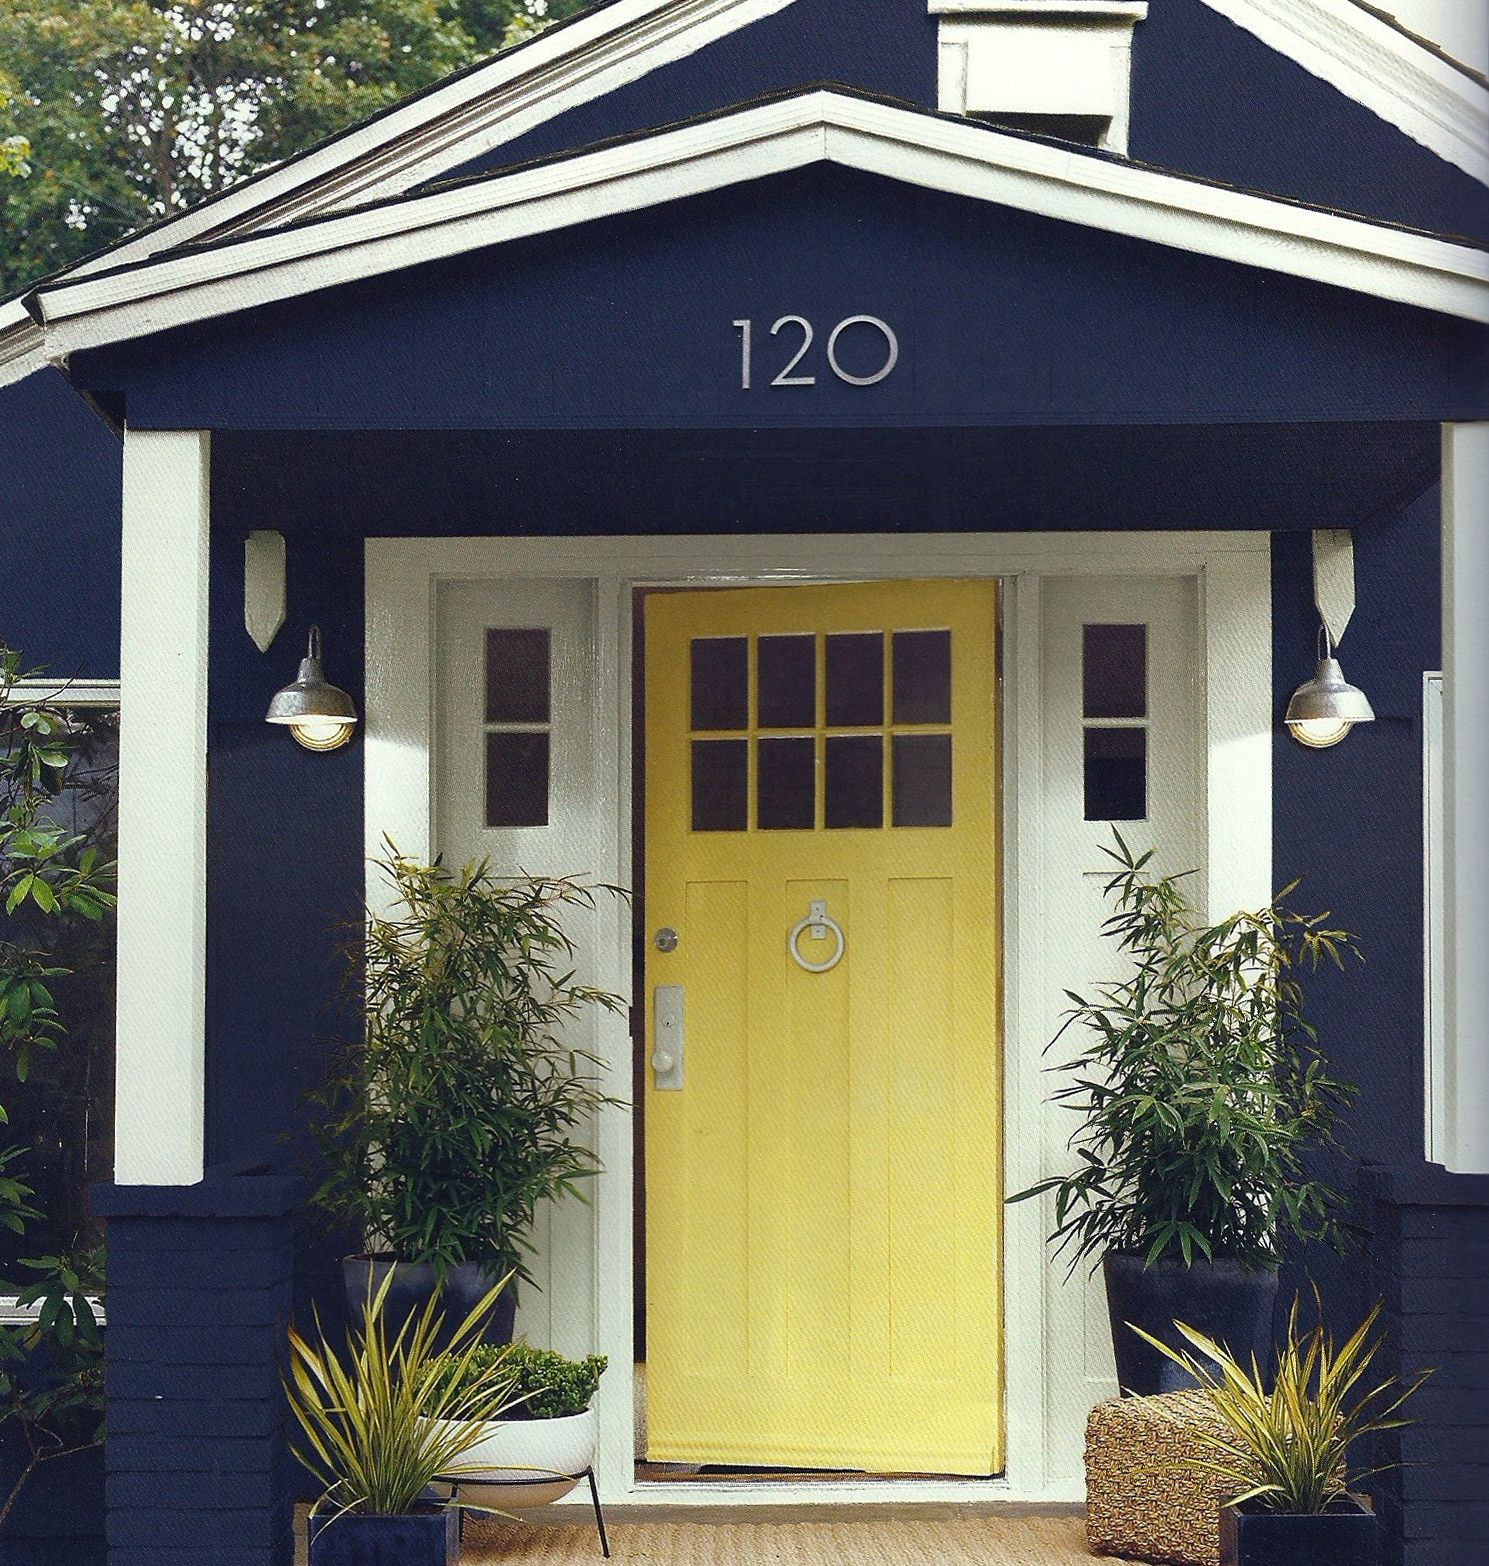 Martha Paint Colors Wrought Iron Lamb Rattan Also Love Those House Numbers